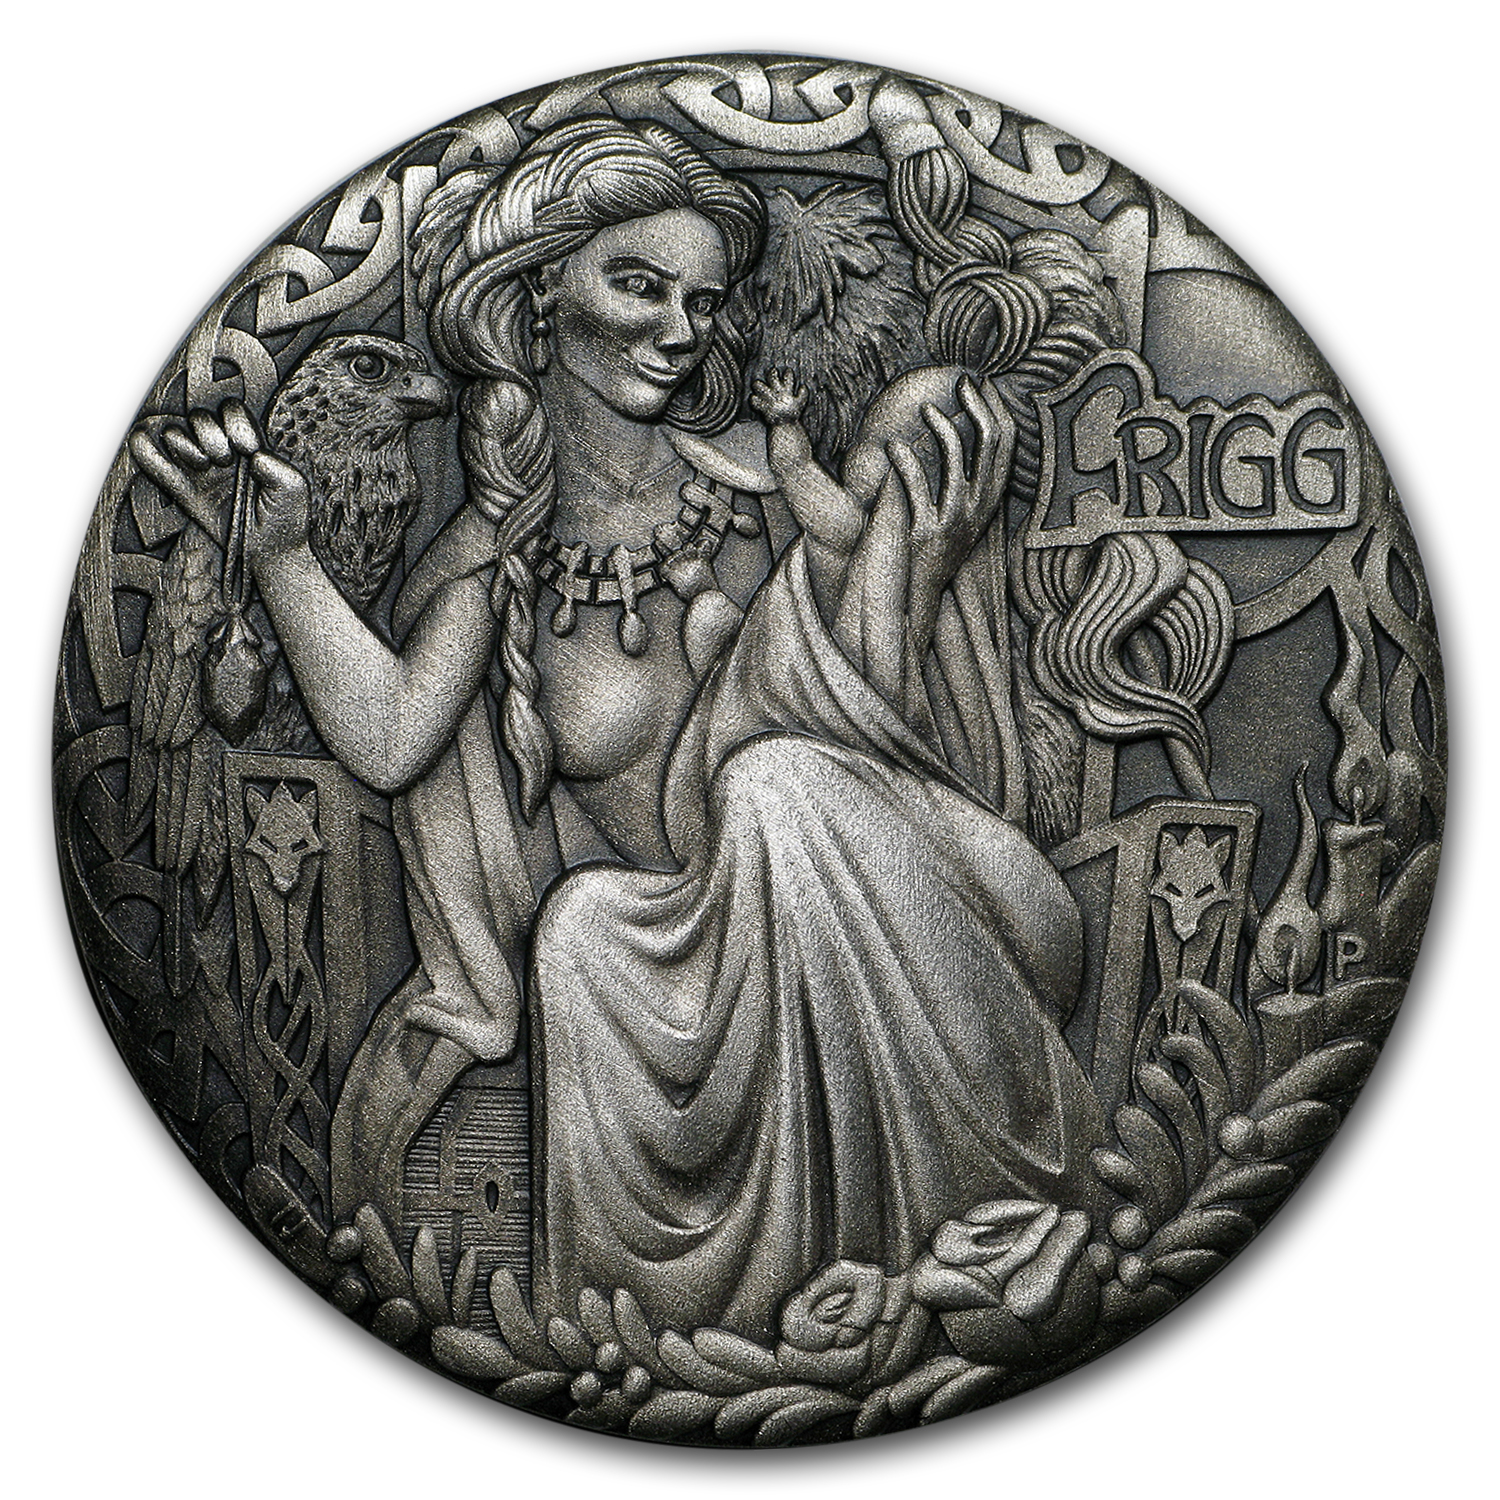 2017 Tuvalu 2 oz Silver Norse Goddesses: Frigg (High Relief)